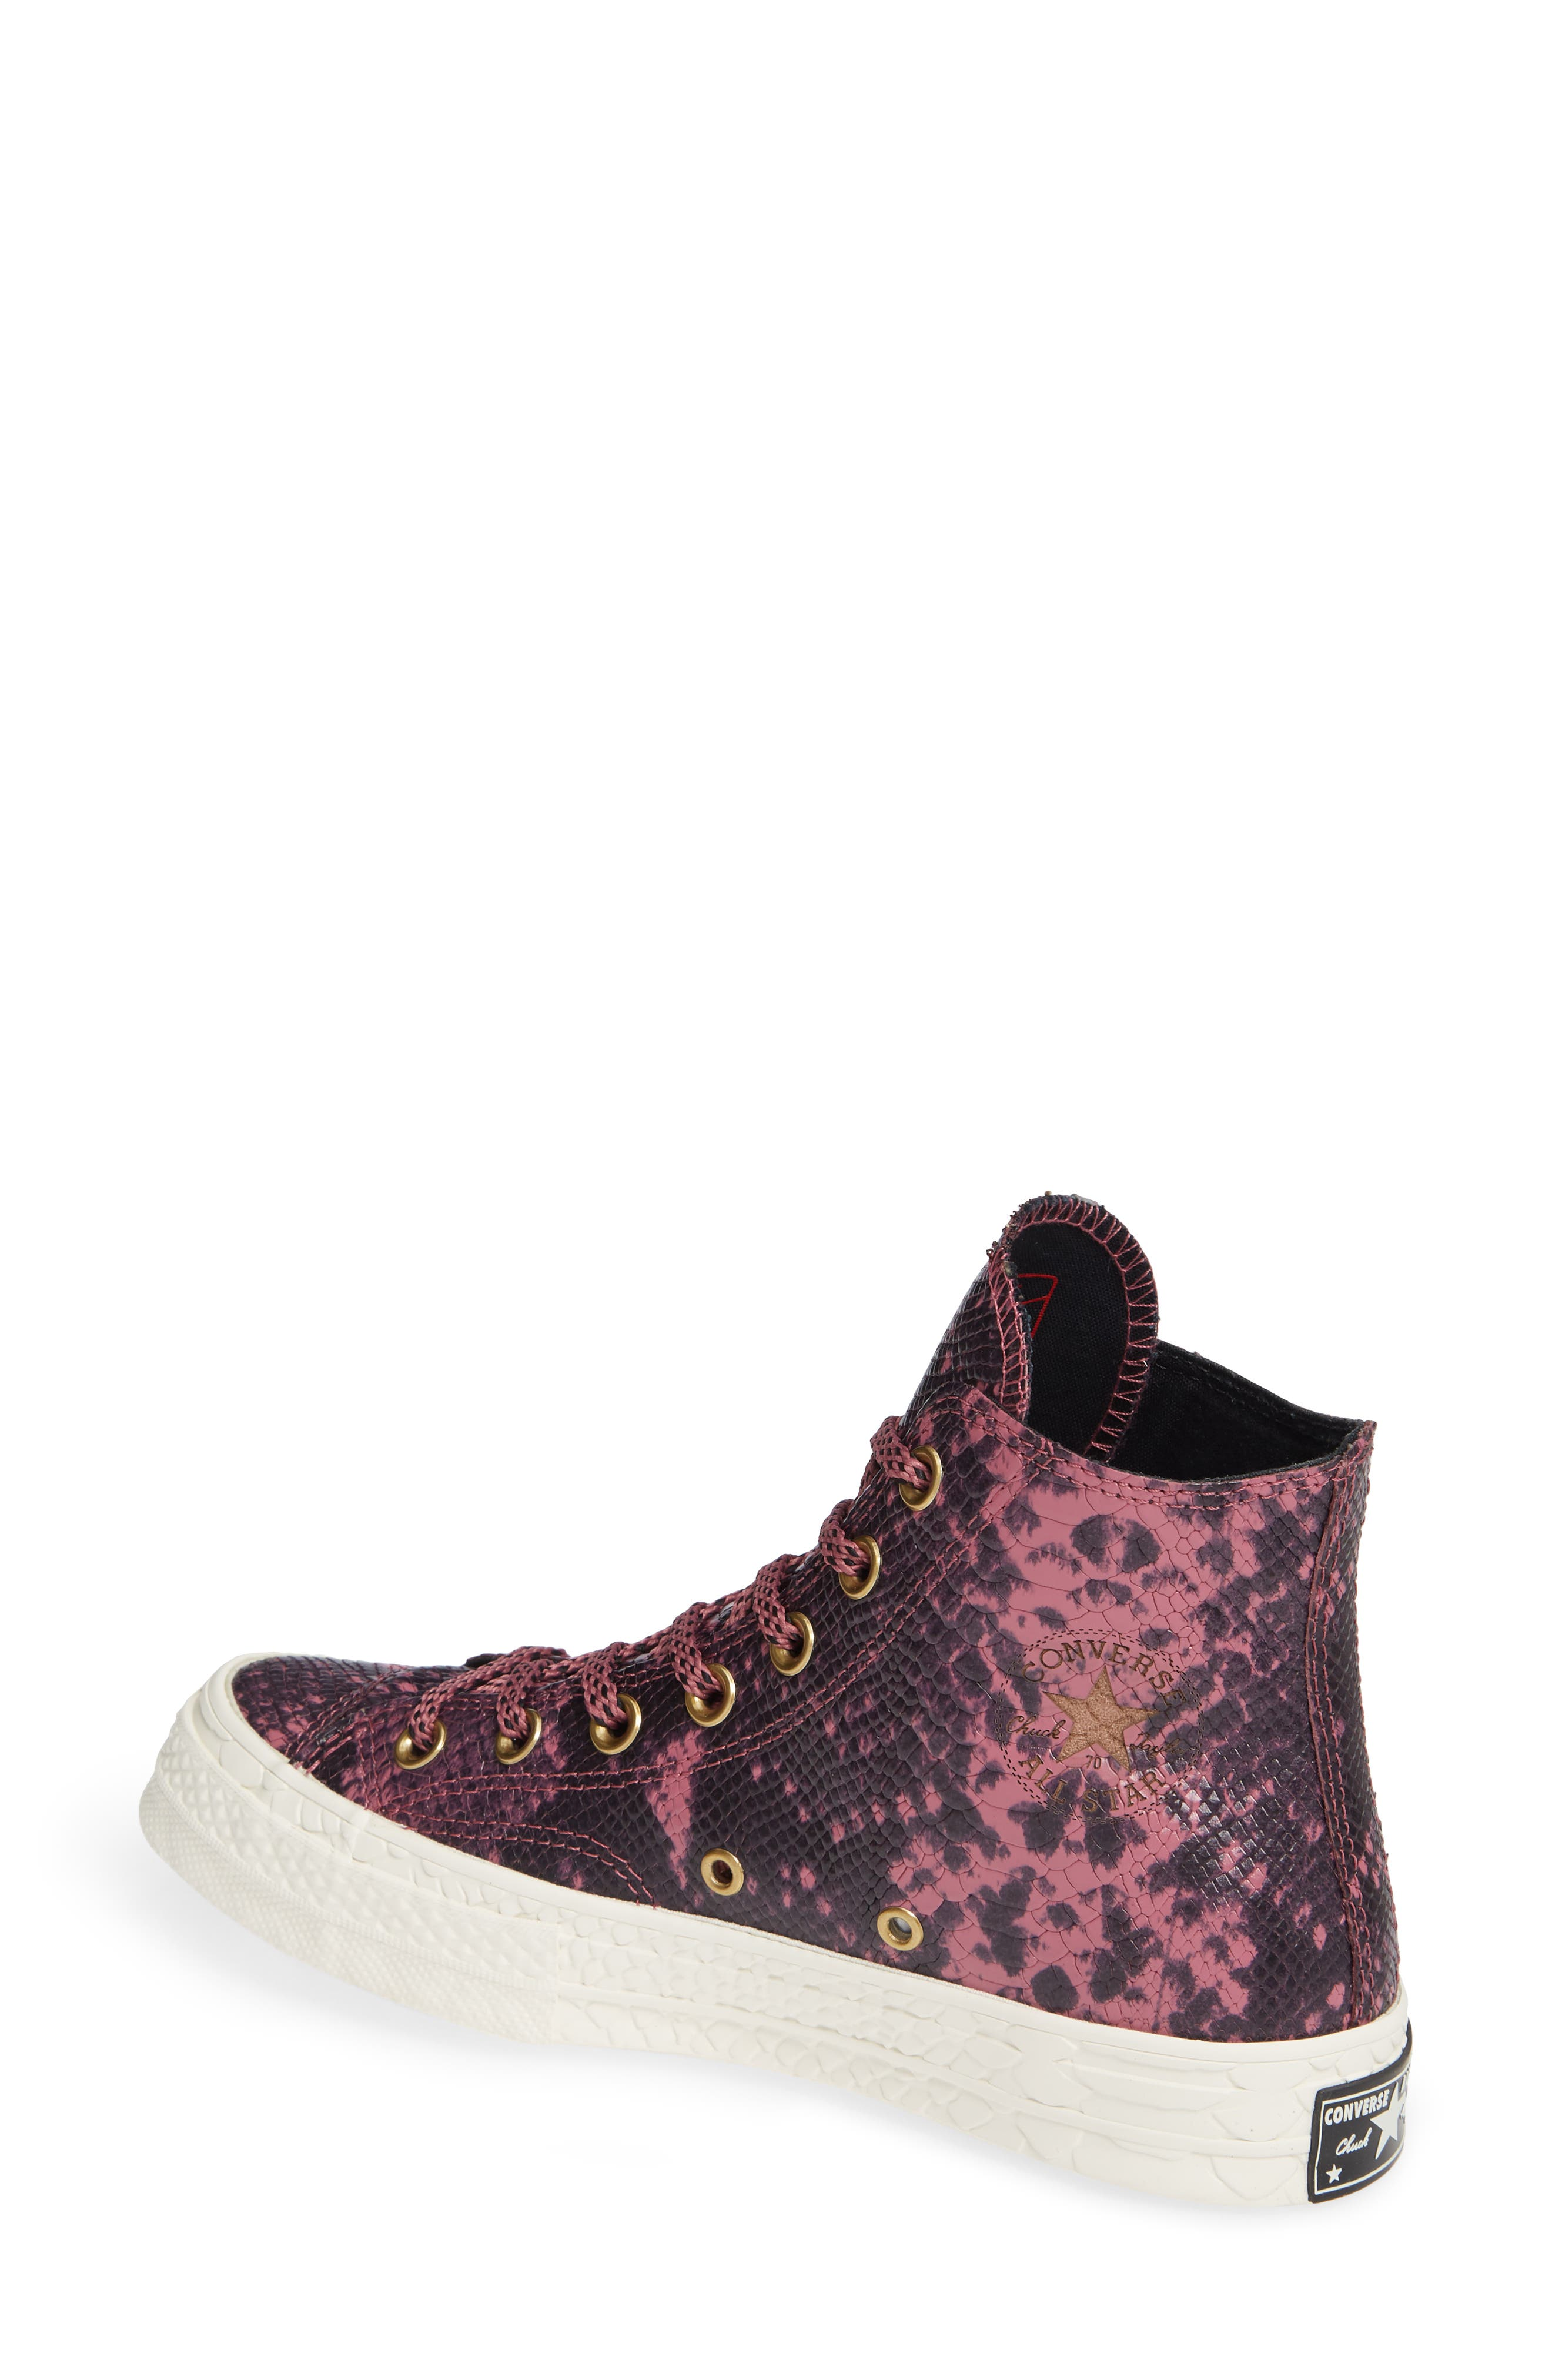 Chuck Taylor<sup>®</sup> All Star<sup>®</sup> CT 70 Reptile High Top Sneaker,                             Alternate thumbnail 2, color,                             VINTAGE WINE LEATHER